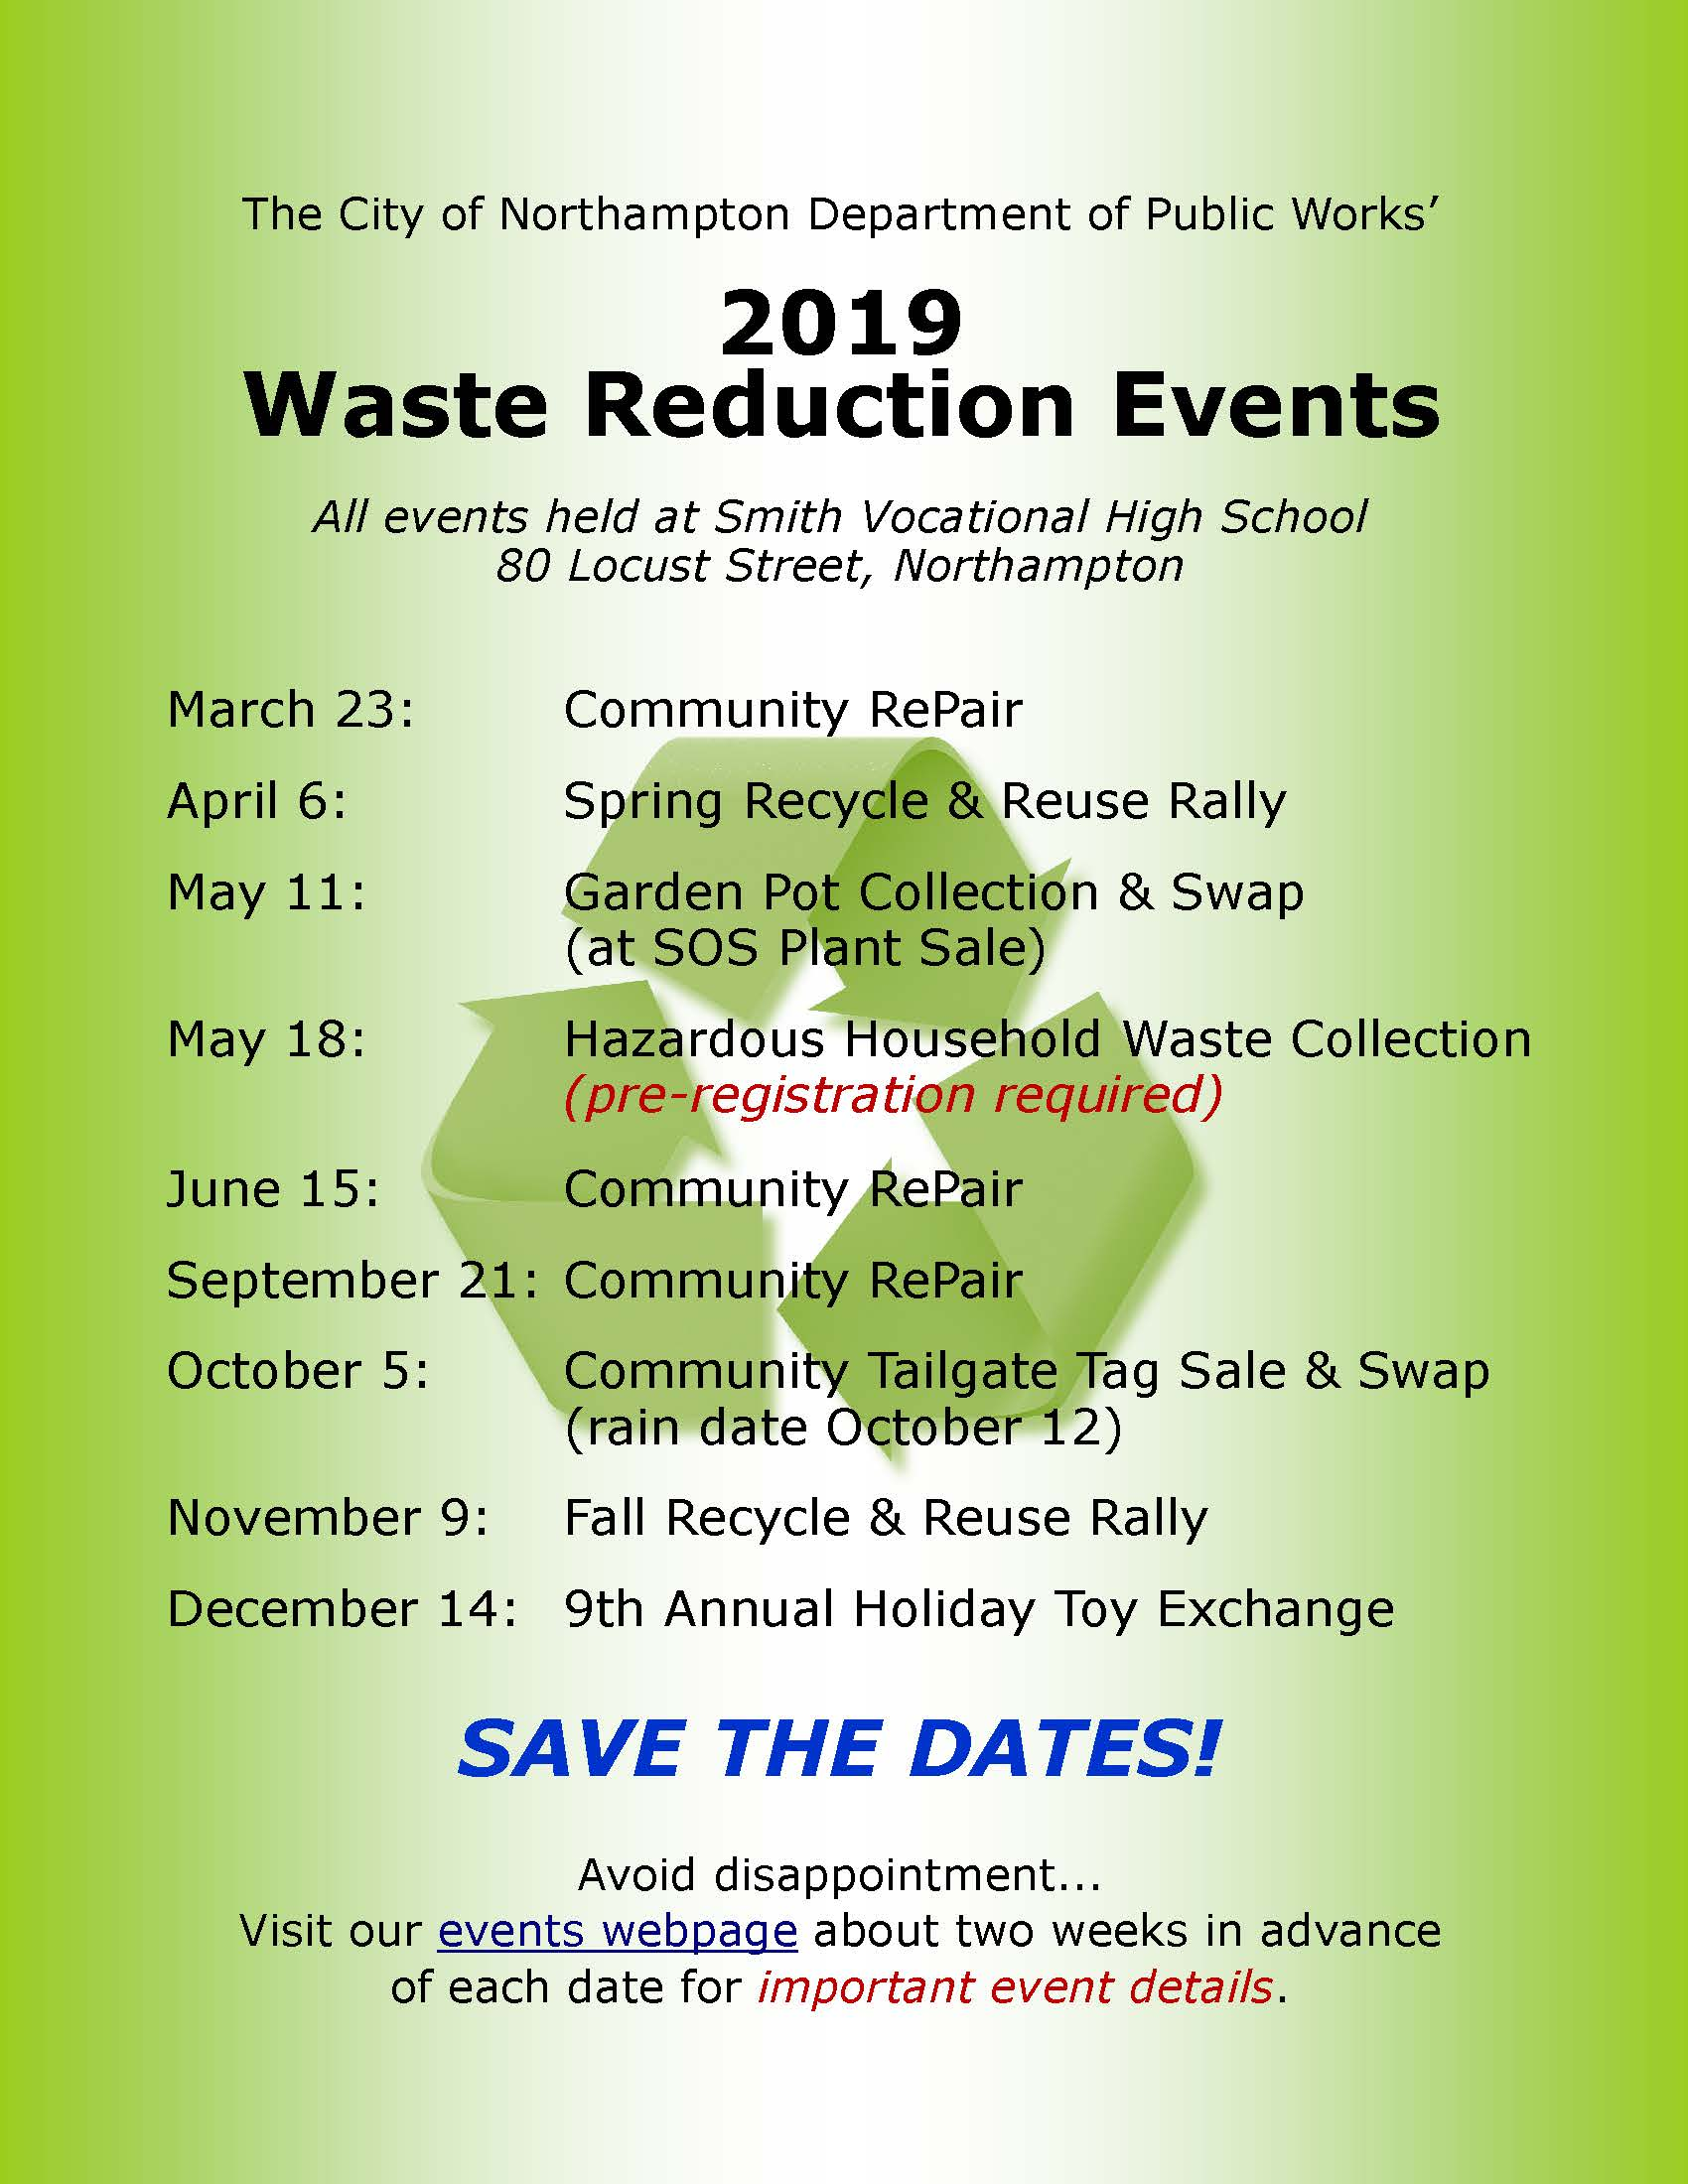 Image of Waste Reduction Events Calendar 2019